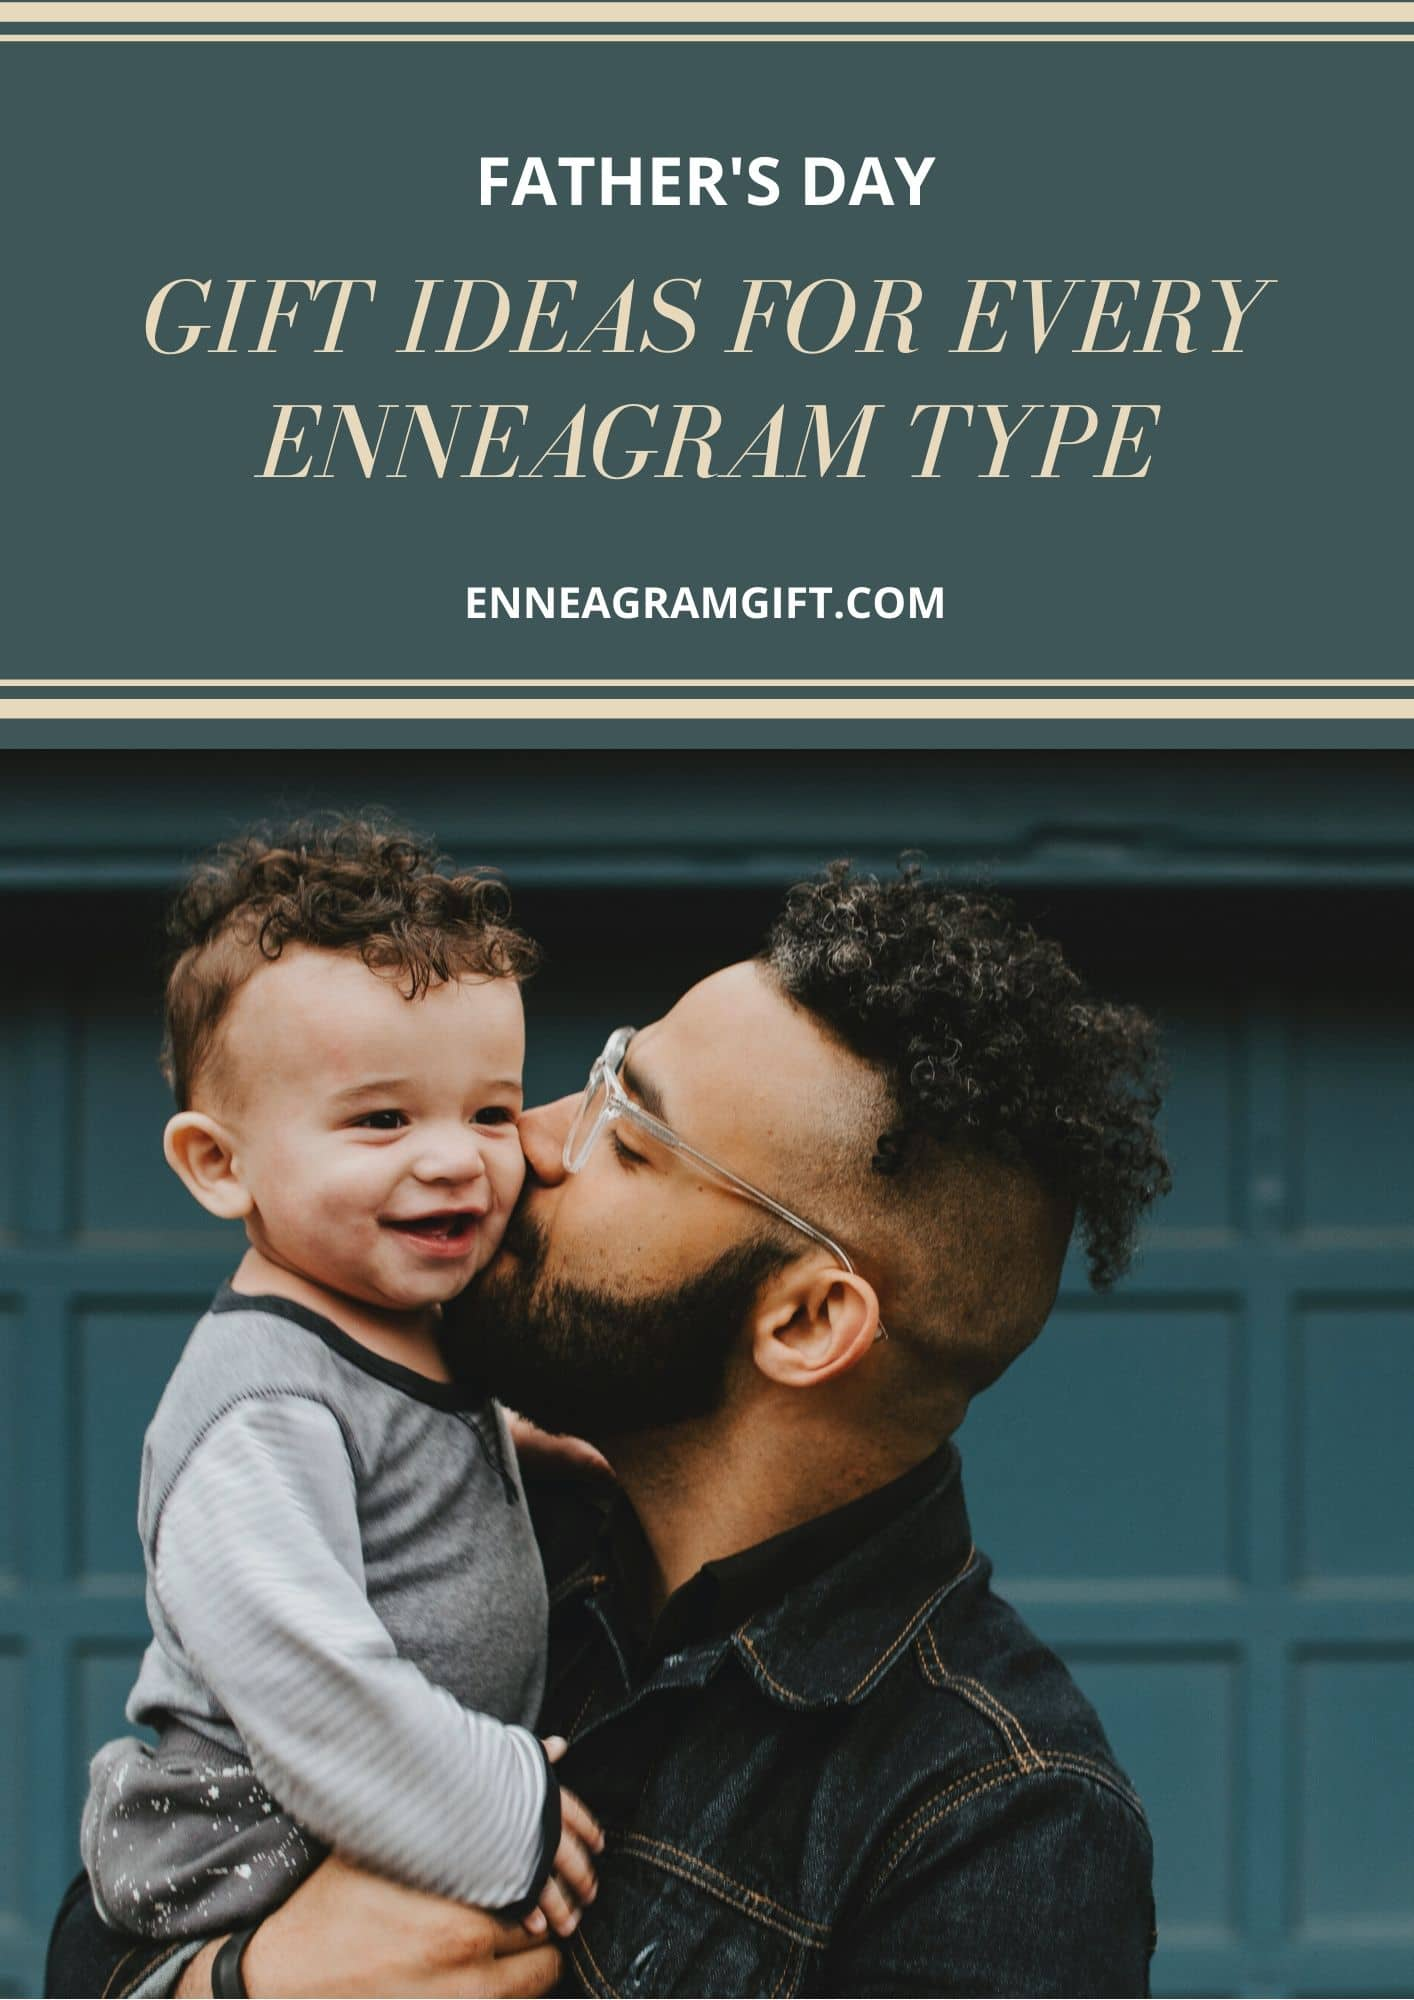 father's day gift ideas for each enneagram type